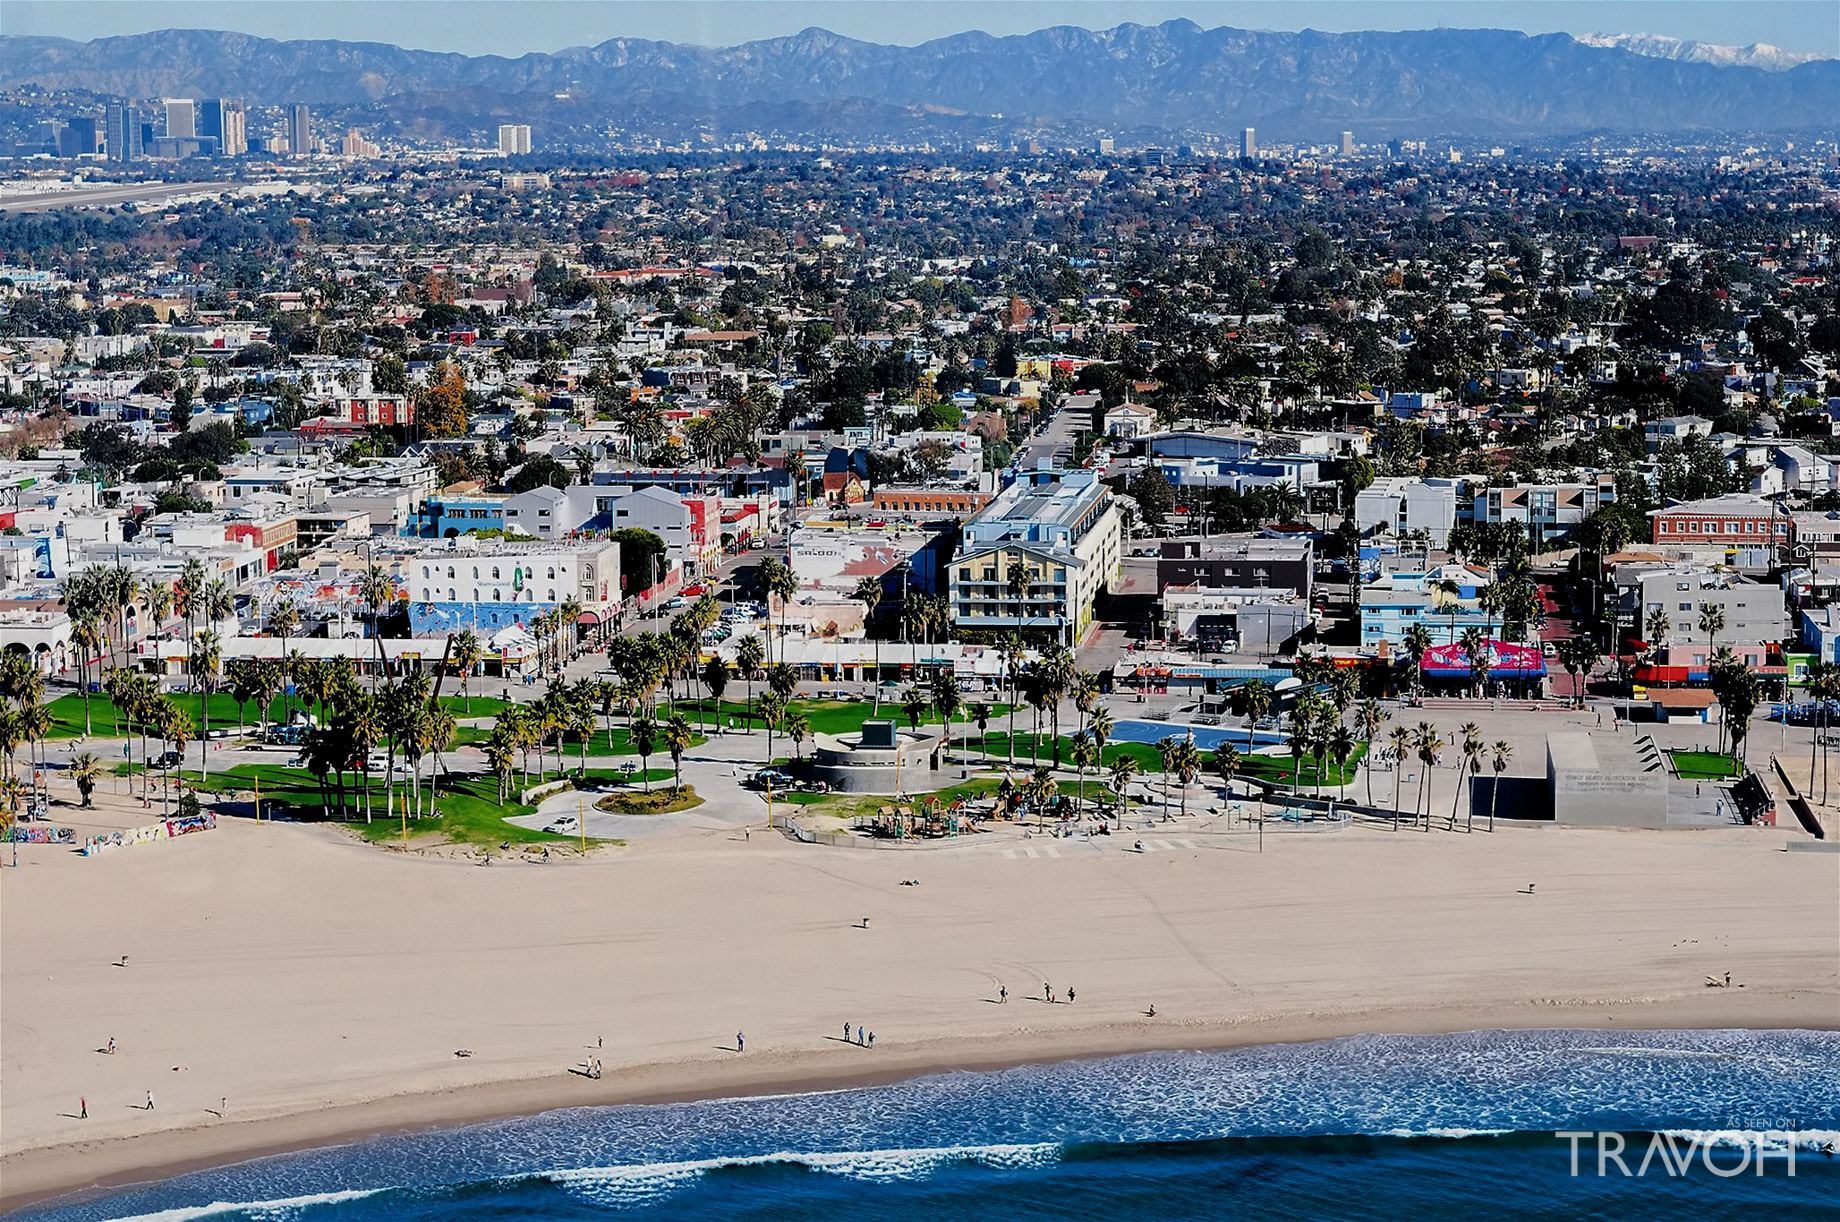 Venice Beach – Exploring 10 of the Top Beaches in Los Angeles, California